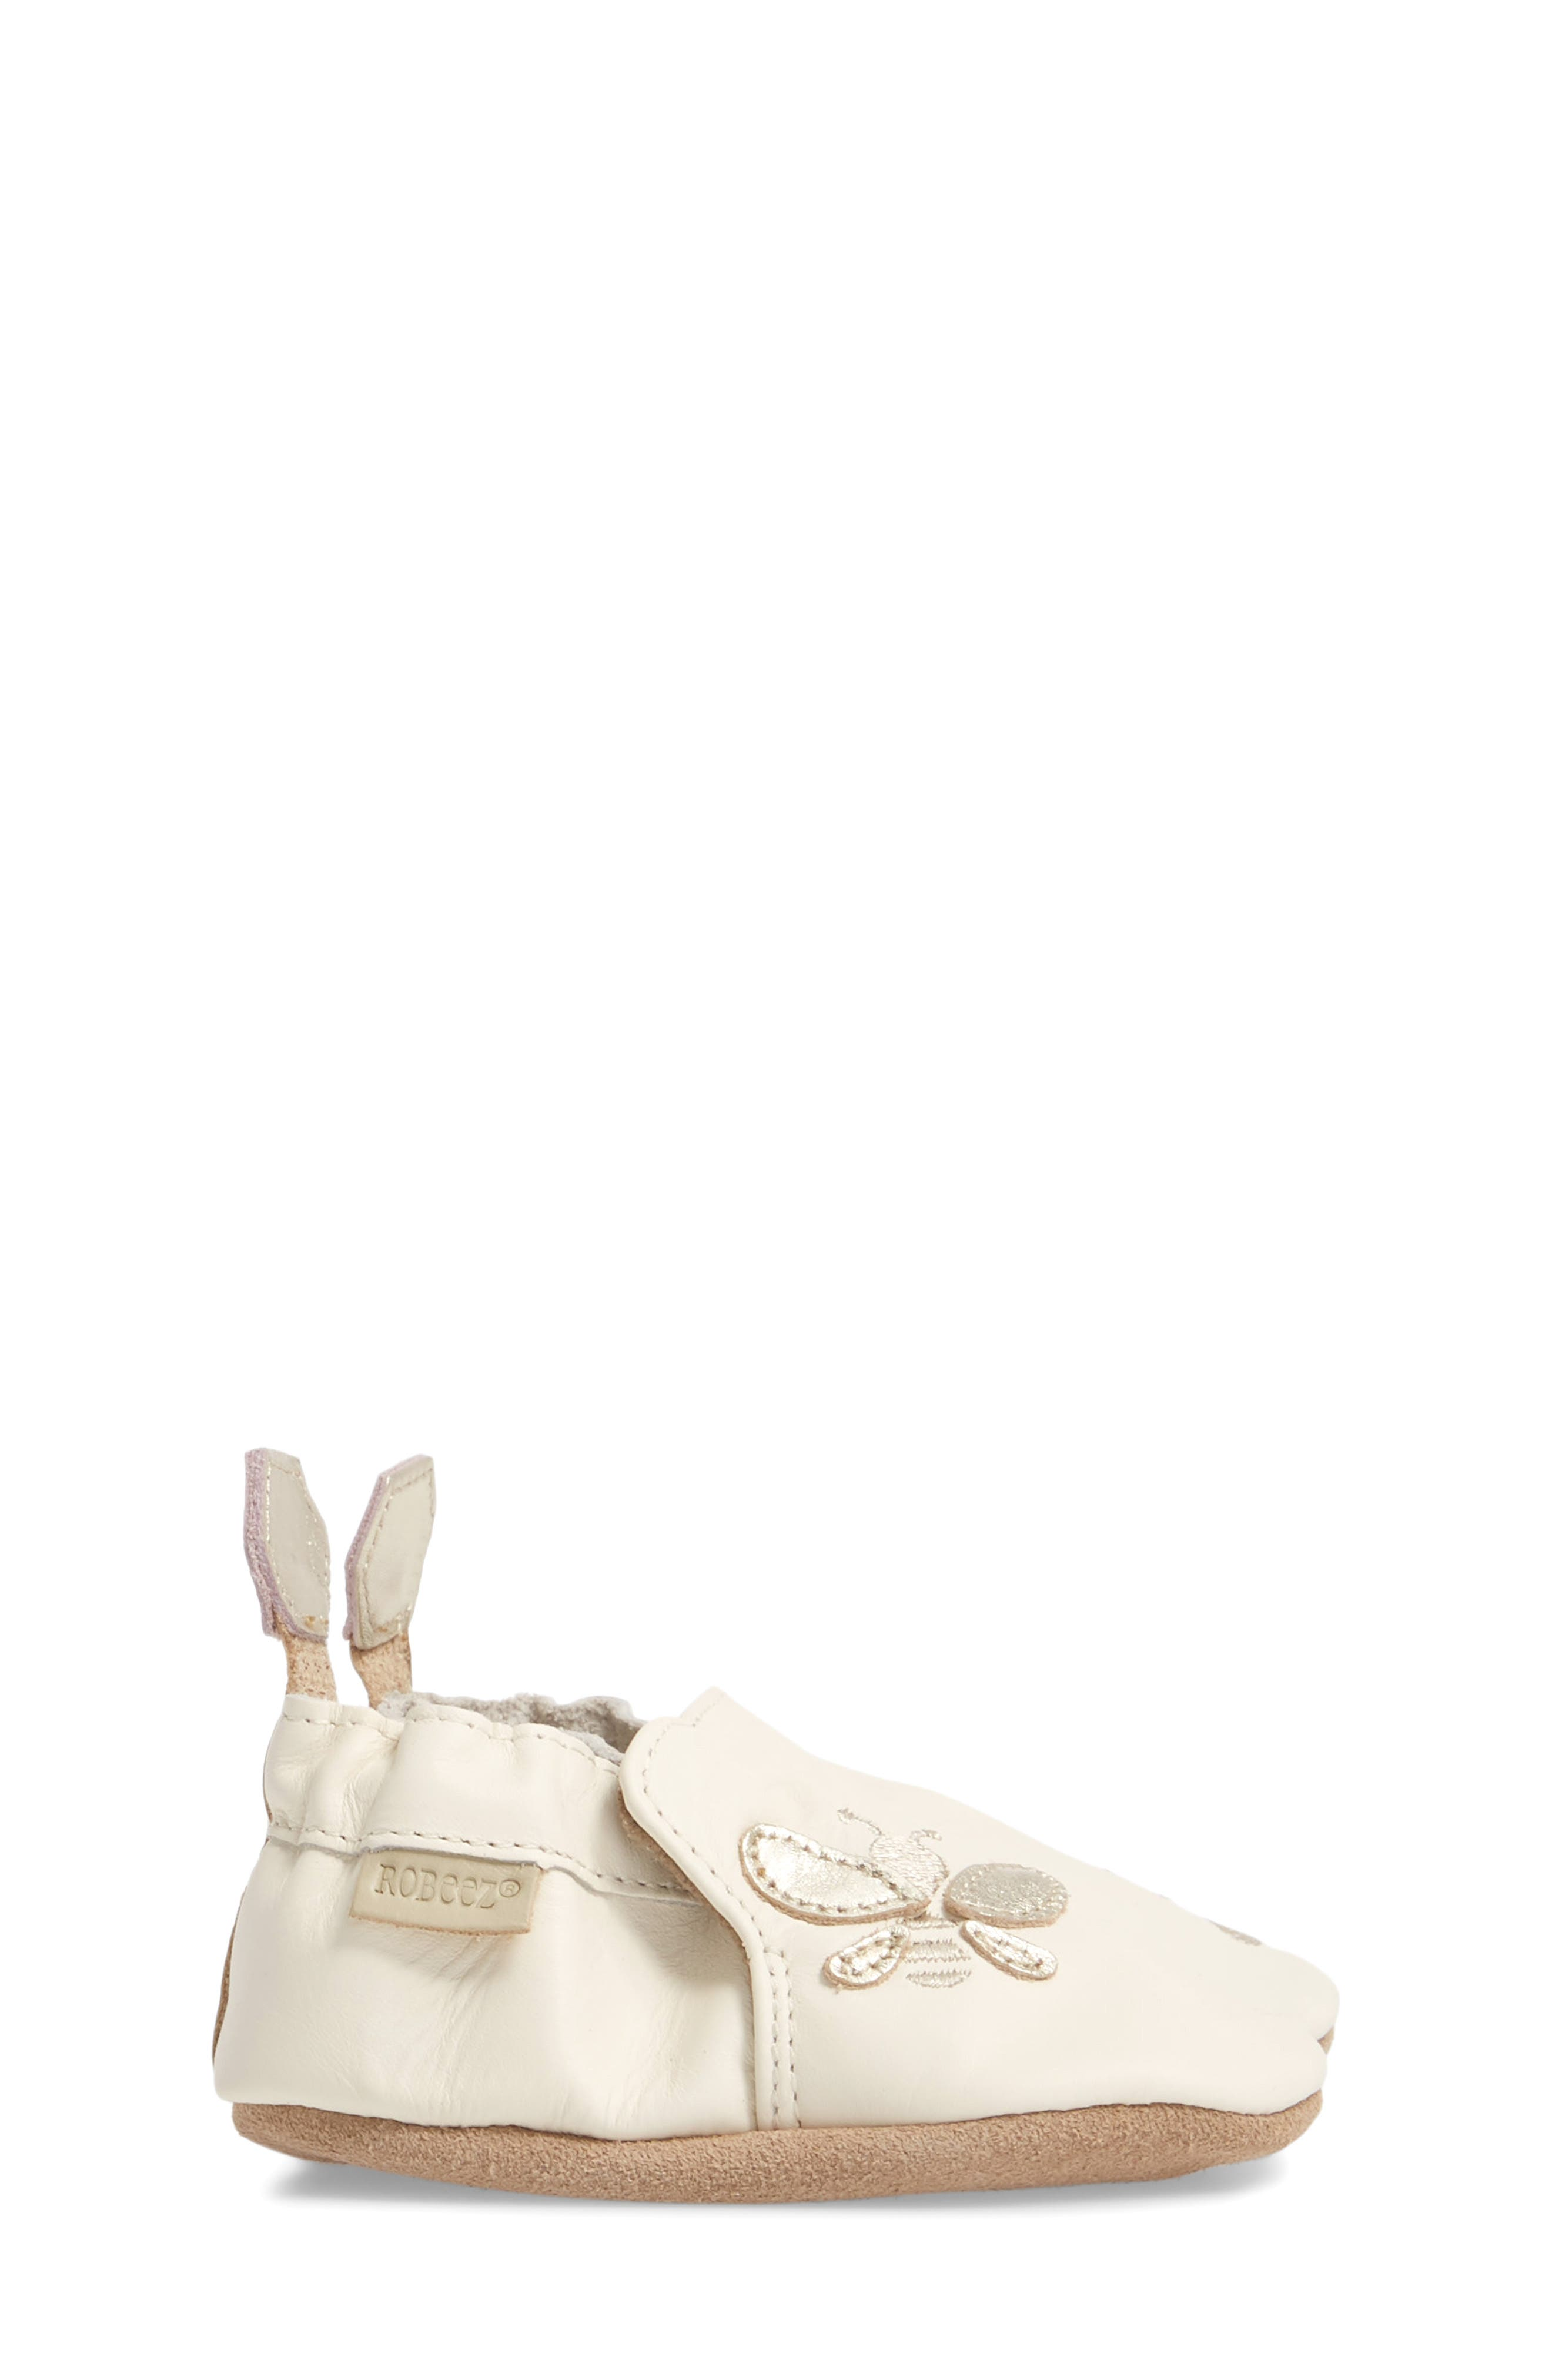 ROBEEZ<SUP>®</SUP>, Bee Moccasin Sneaker, Alternate thumbnail 3, color, CREAM